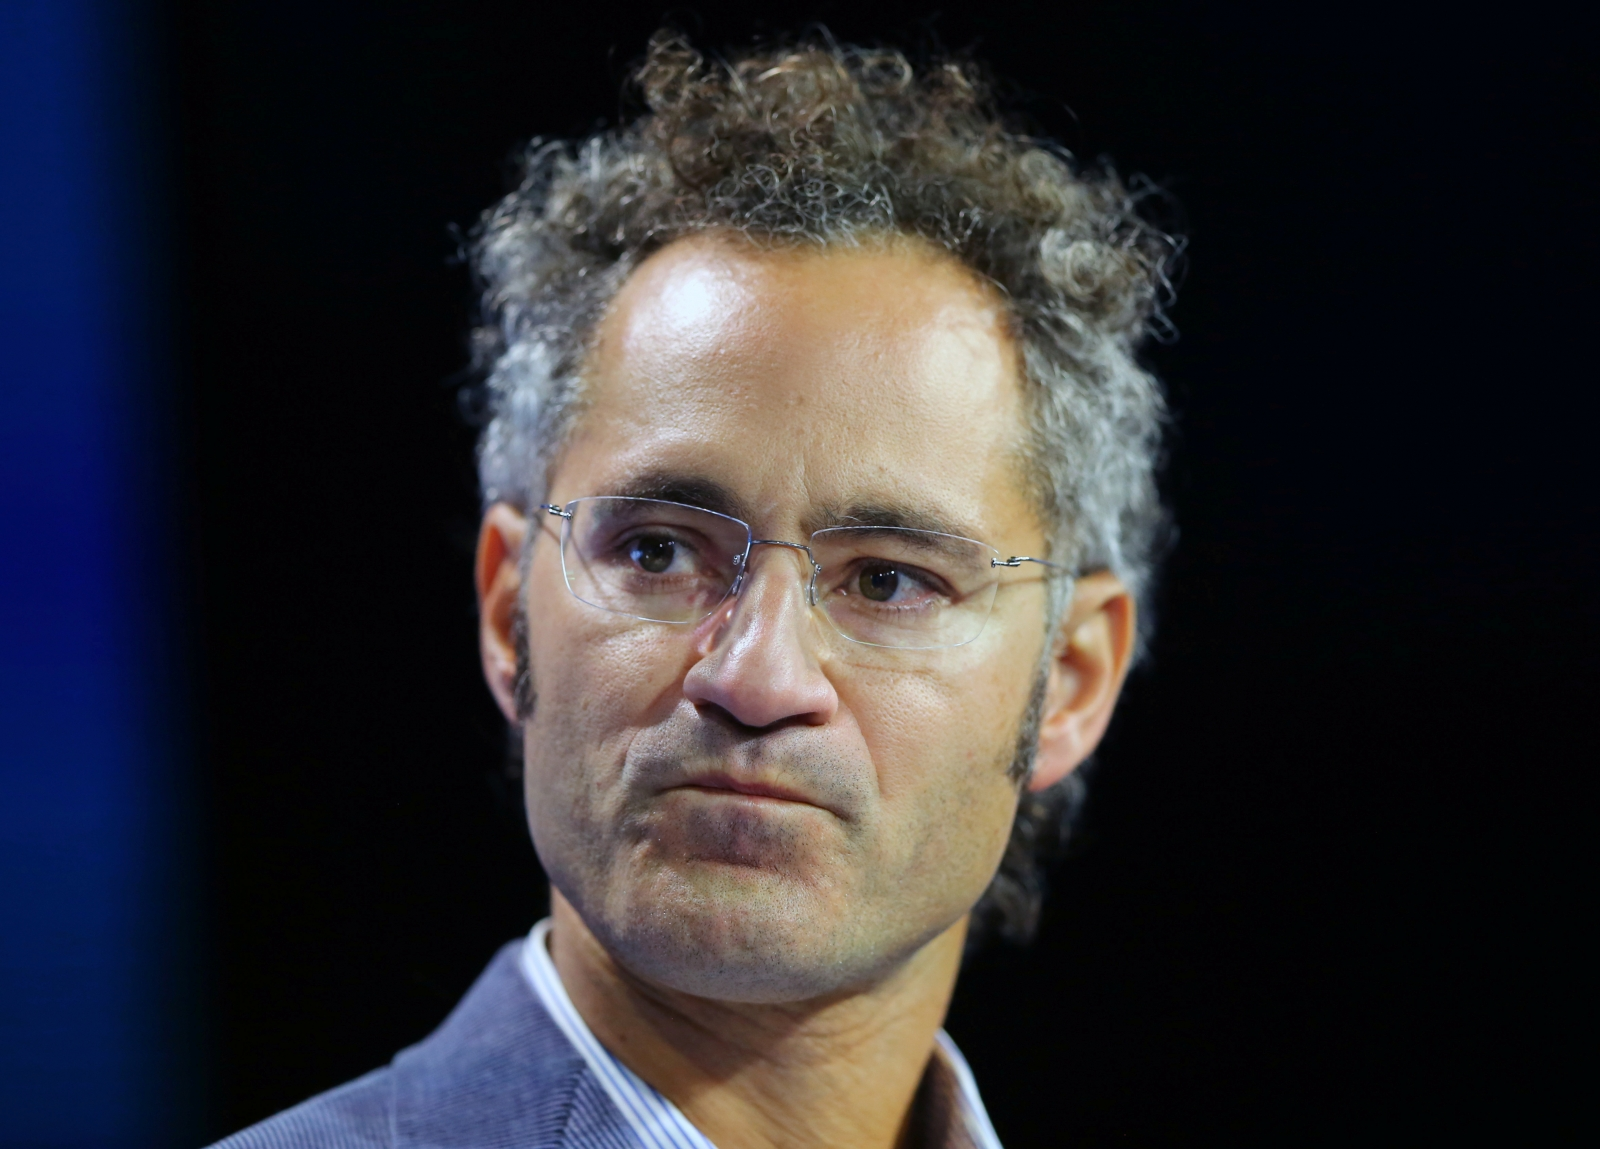 Palantir to pay out $1.7m to resolve claims of it discriminating against Asians